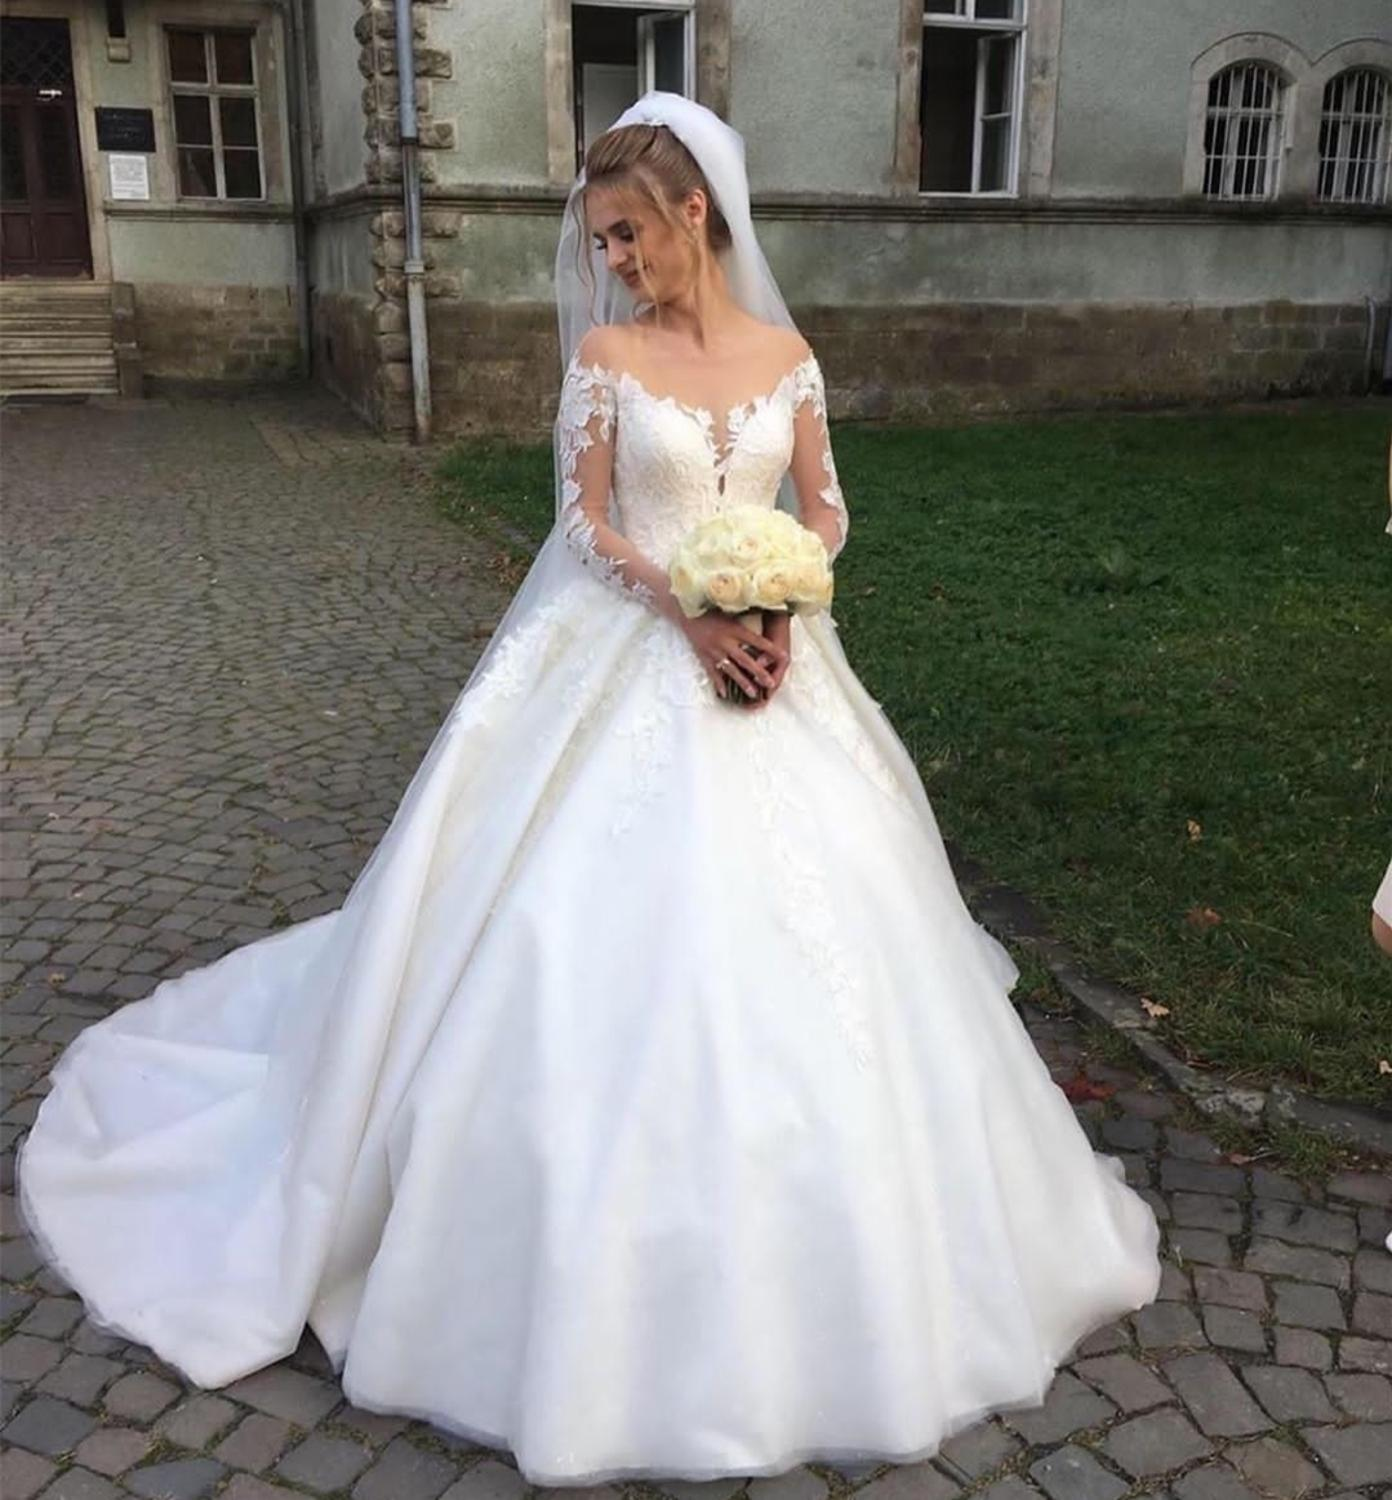 2020 Custom Wedding Dress Long Sleeve Lace Ball Gown Tulle High Quality Robe De Mariage Bestidos De Novia Gorditas Gorgeous New